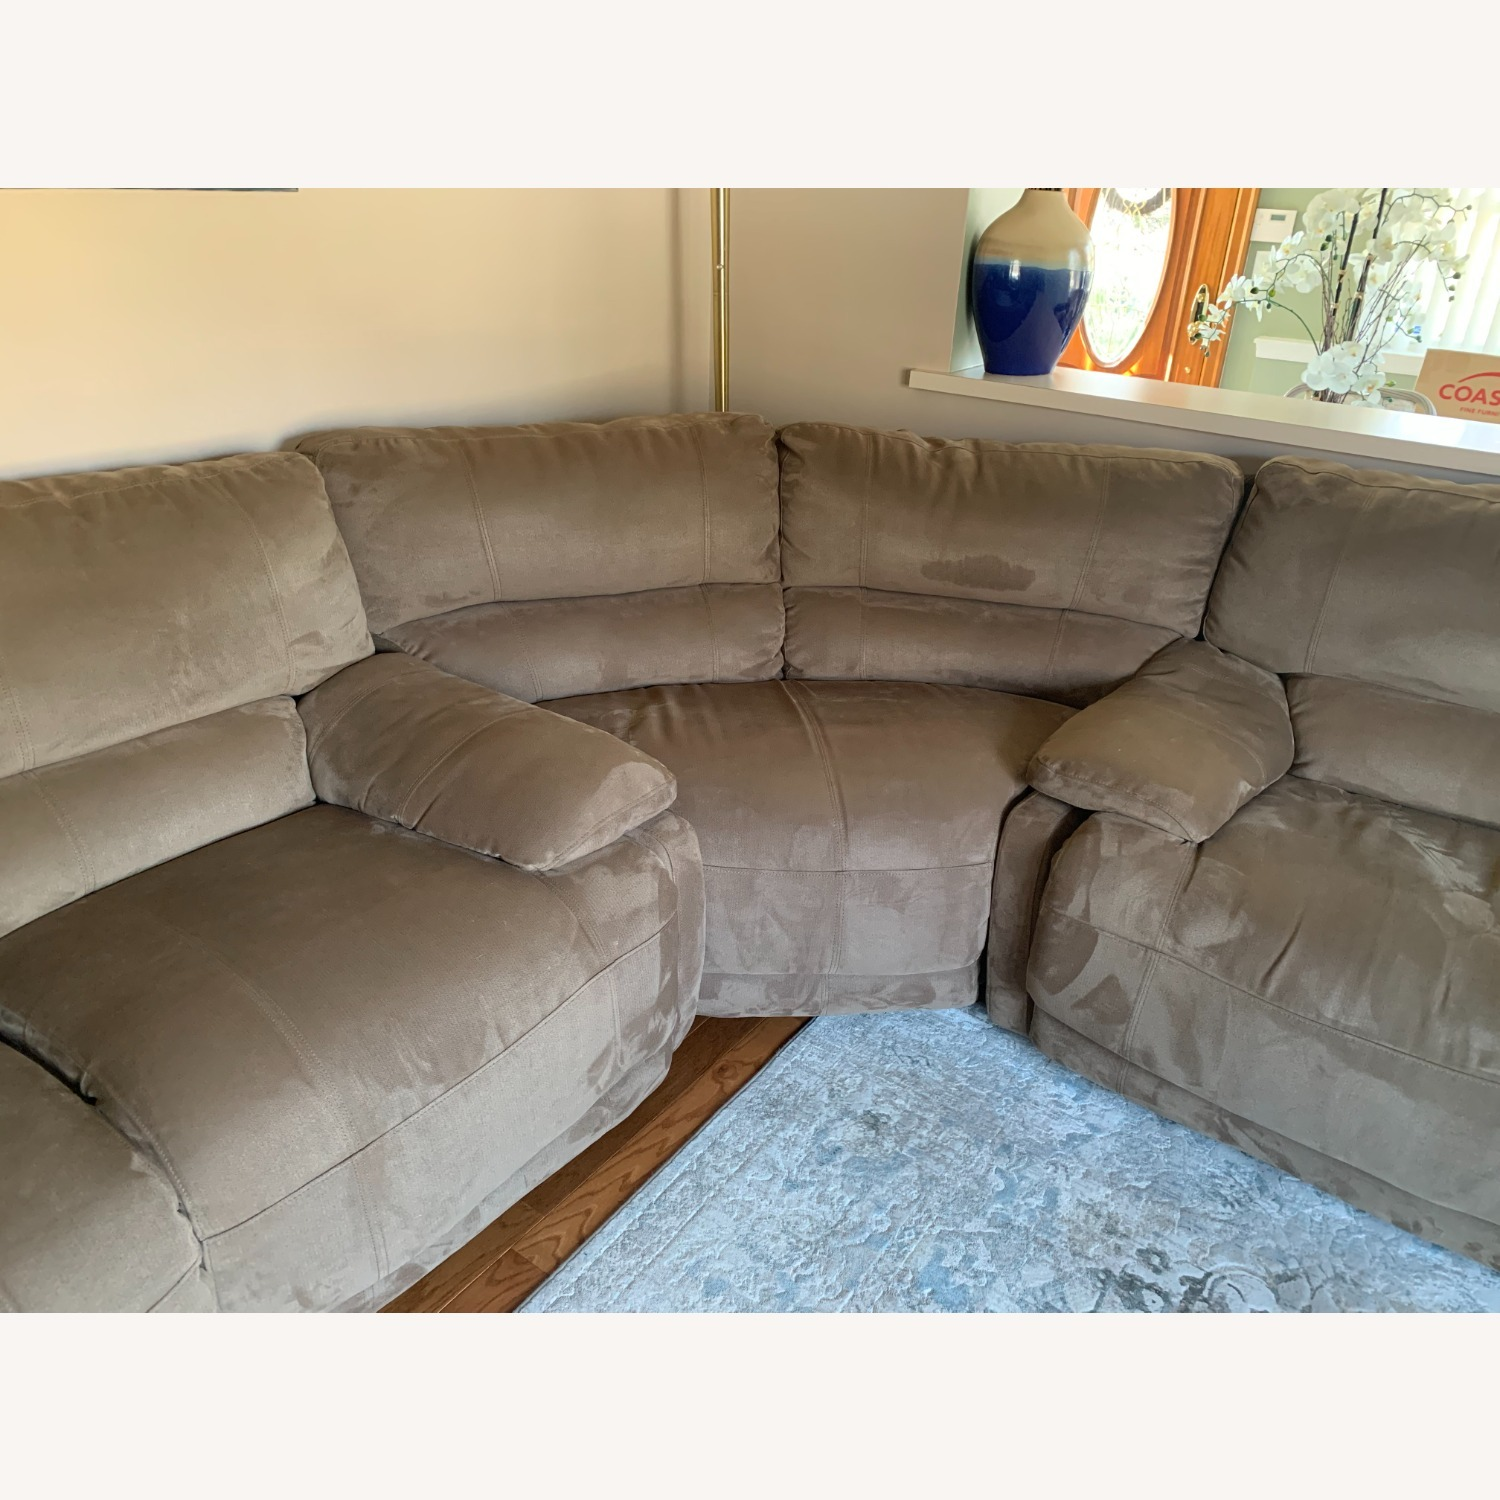 3 Piece Sectional Couch with Recliners - image-6